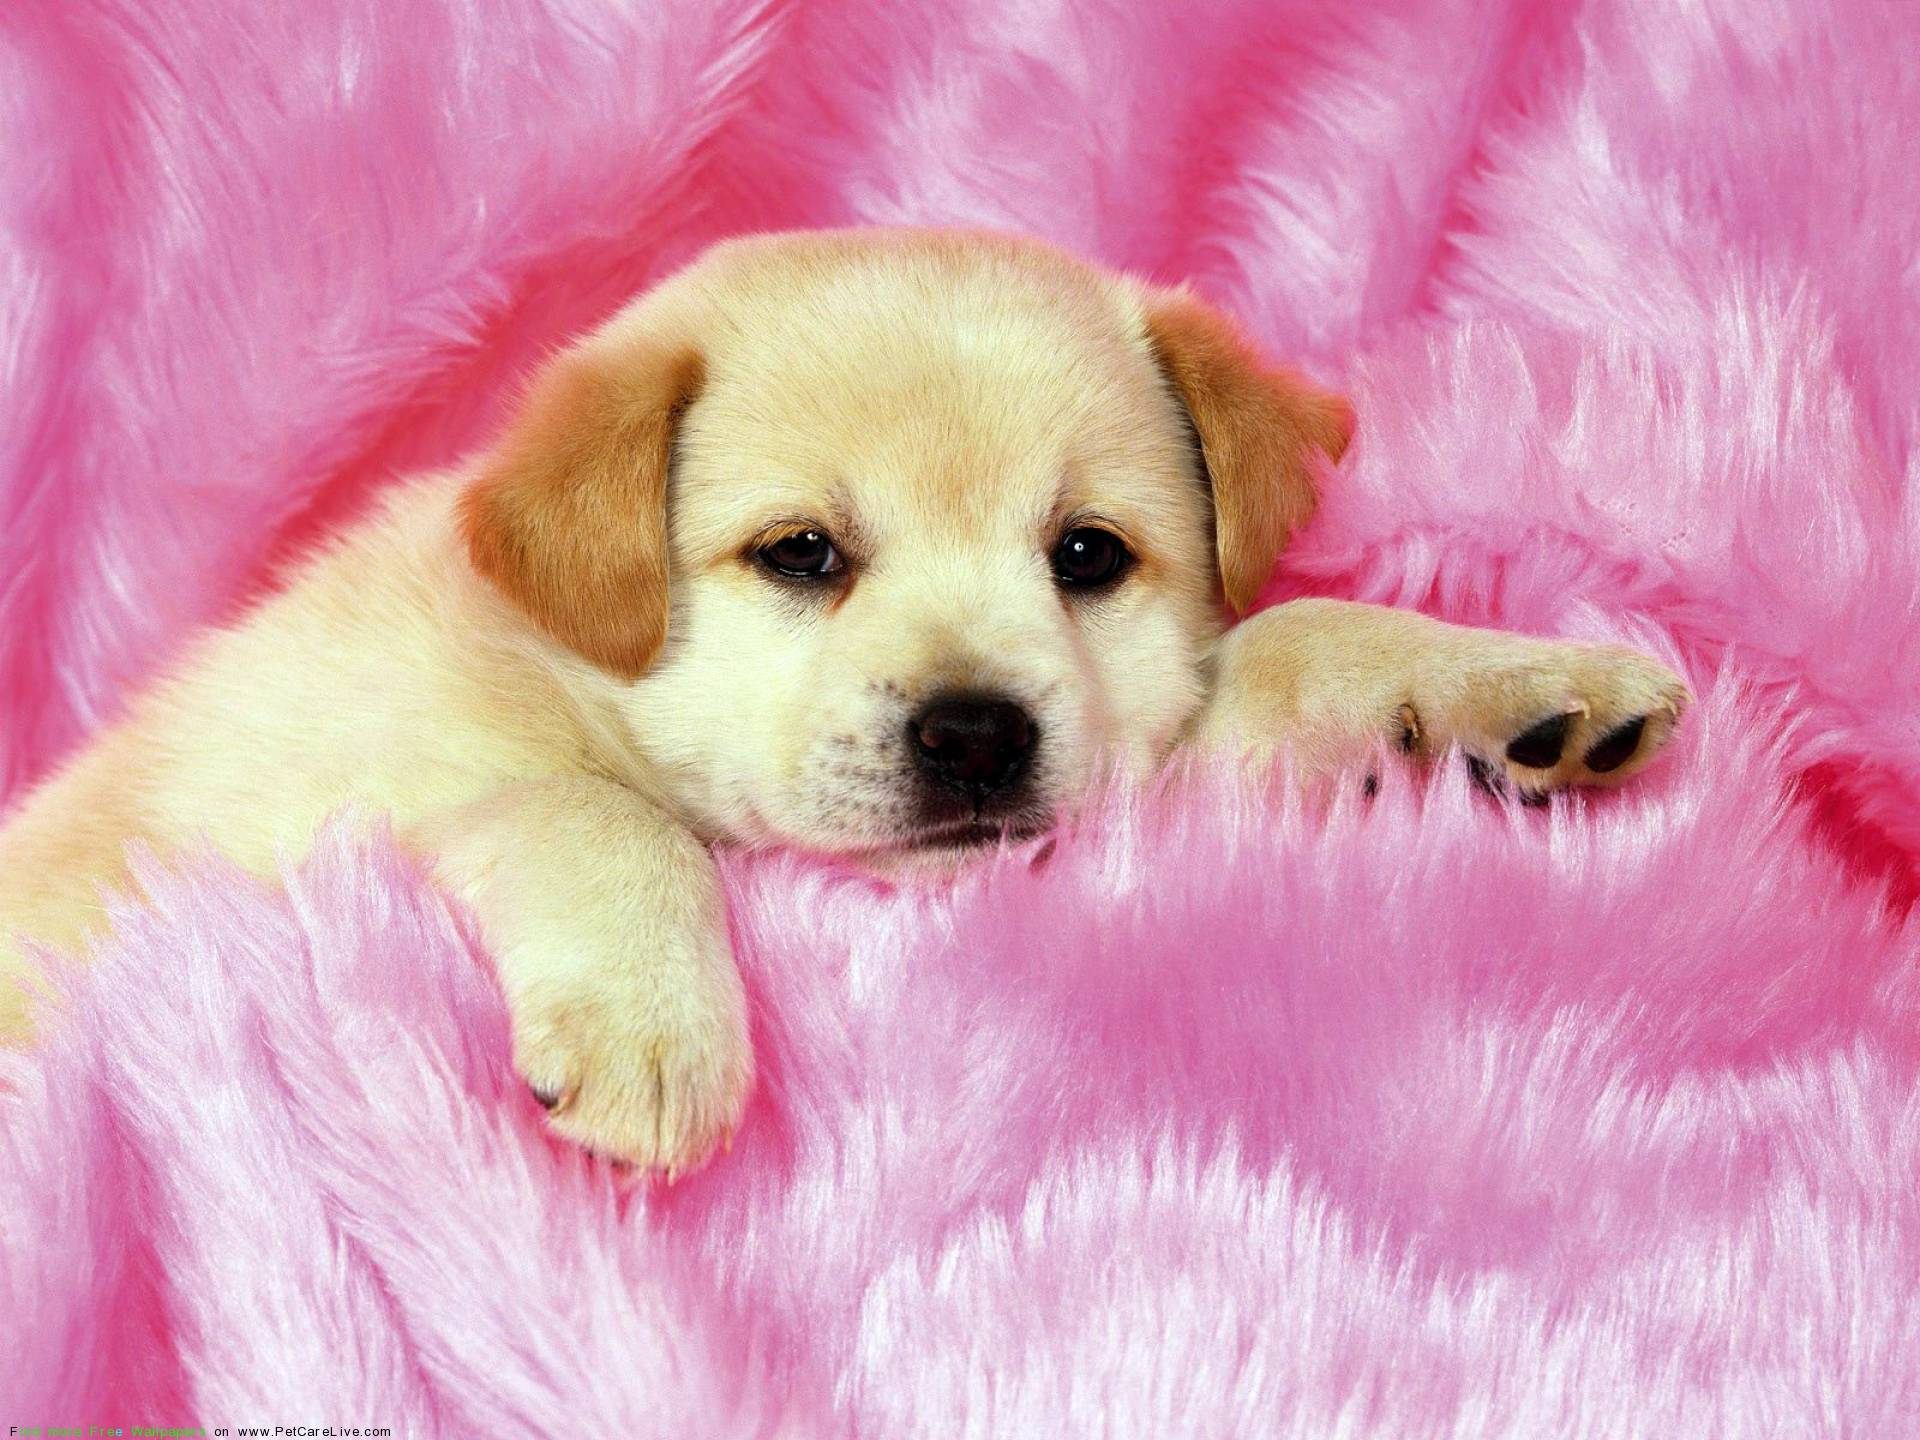 Cute Puppies Wallpapers - HD Wallpapers Inn